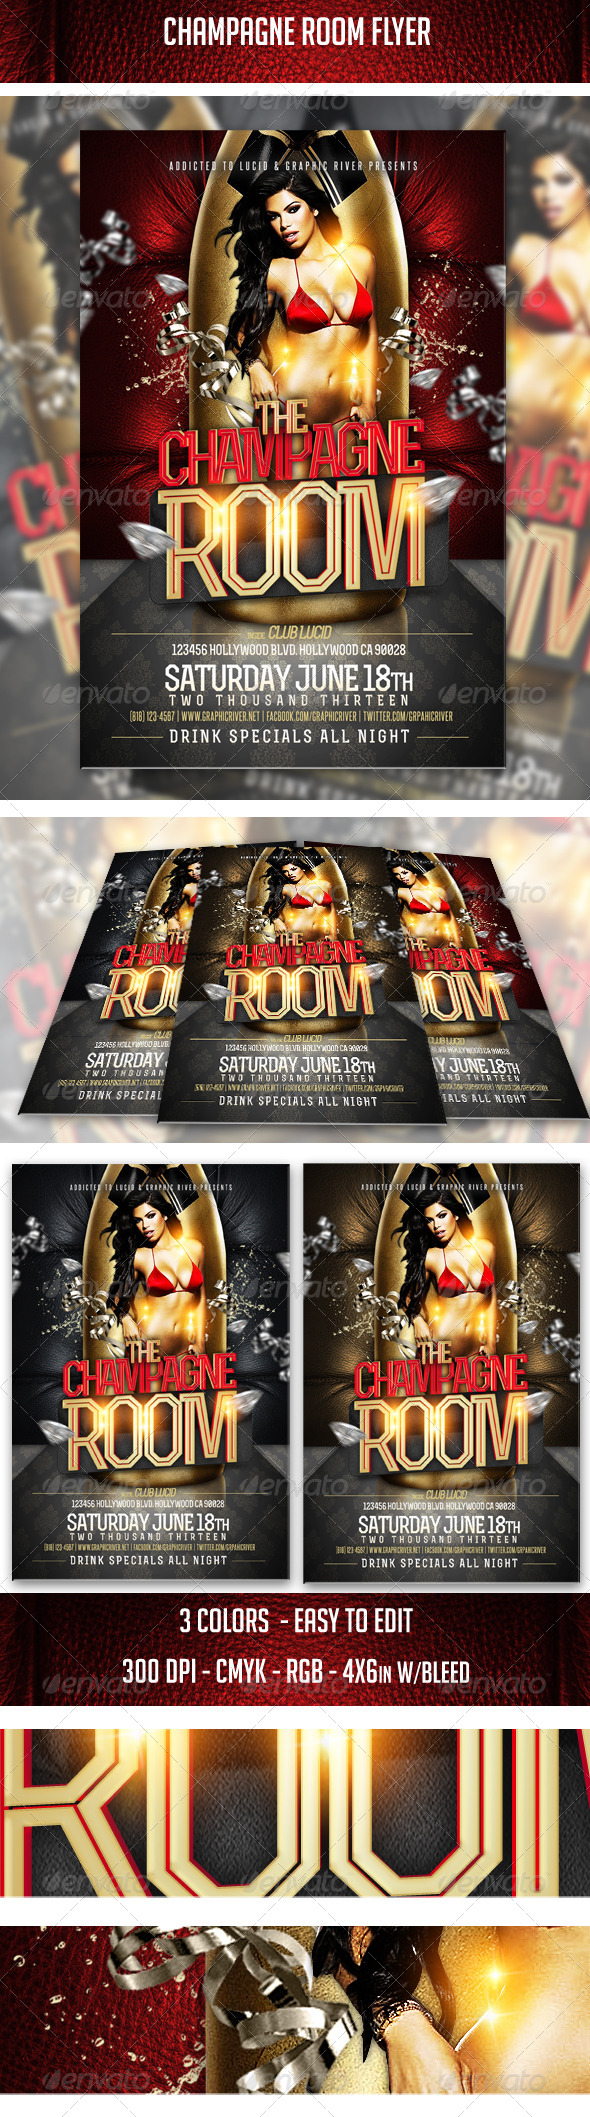 GraphicRiver Champagne Room Flyer 5069457